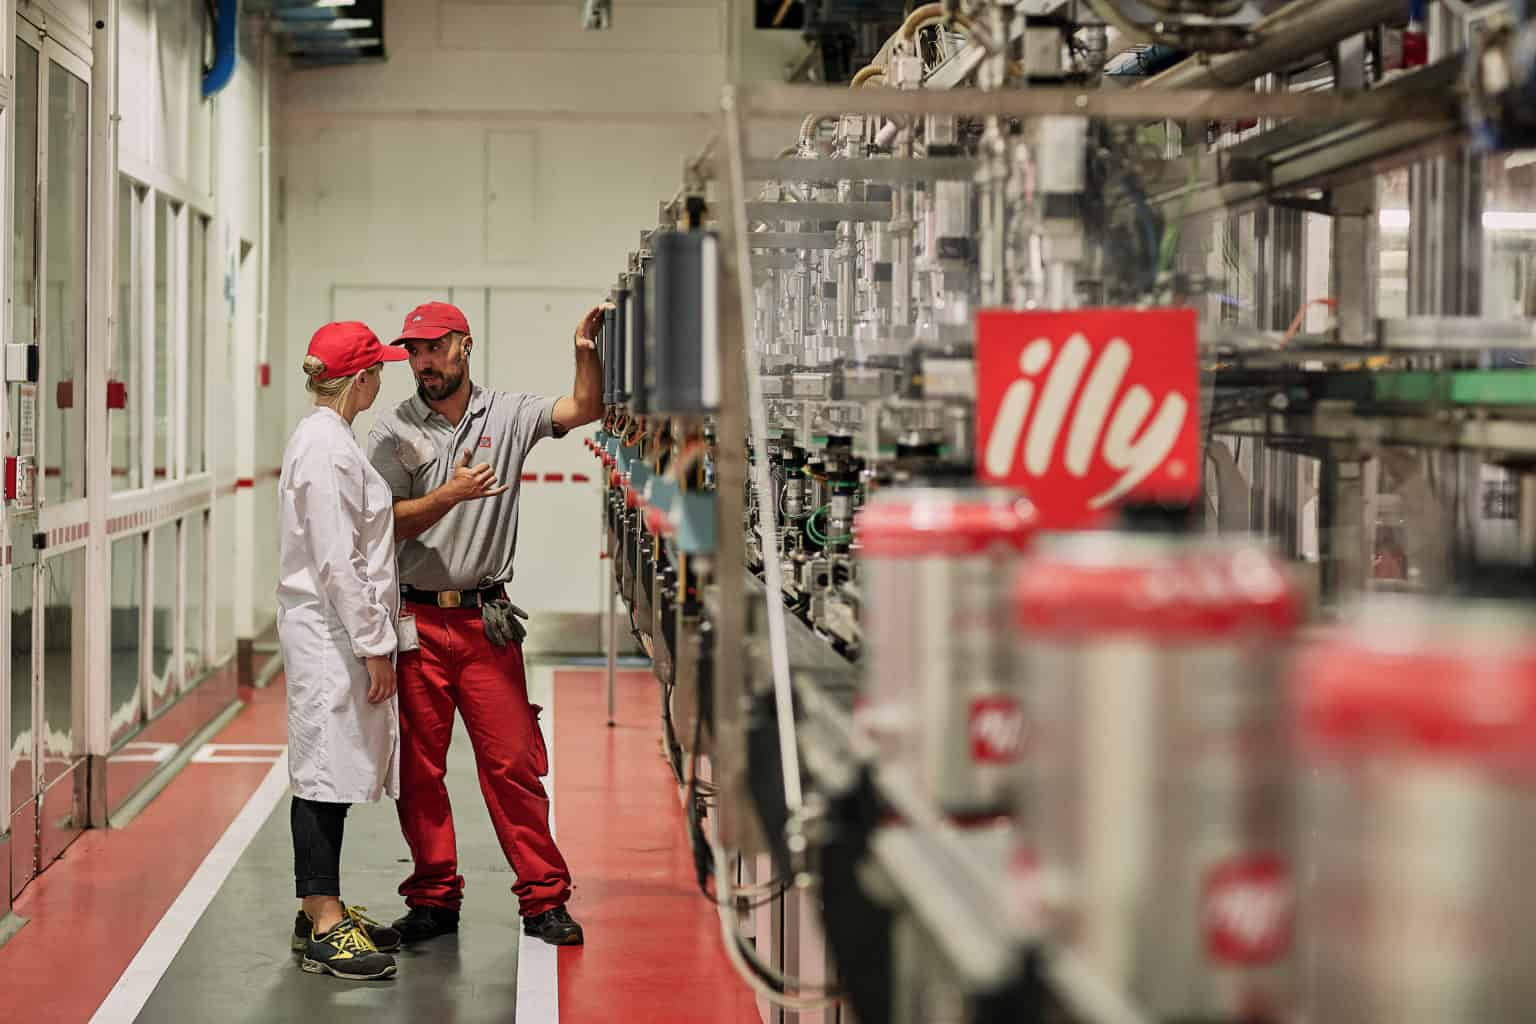 fotografo commerciale reportage industriale case history aziendale immagine corporate Illy Oracle